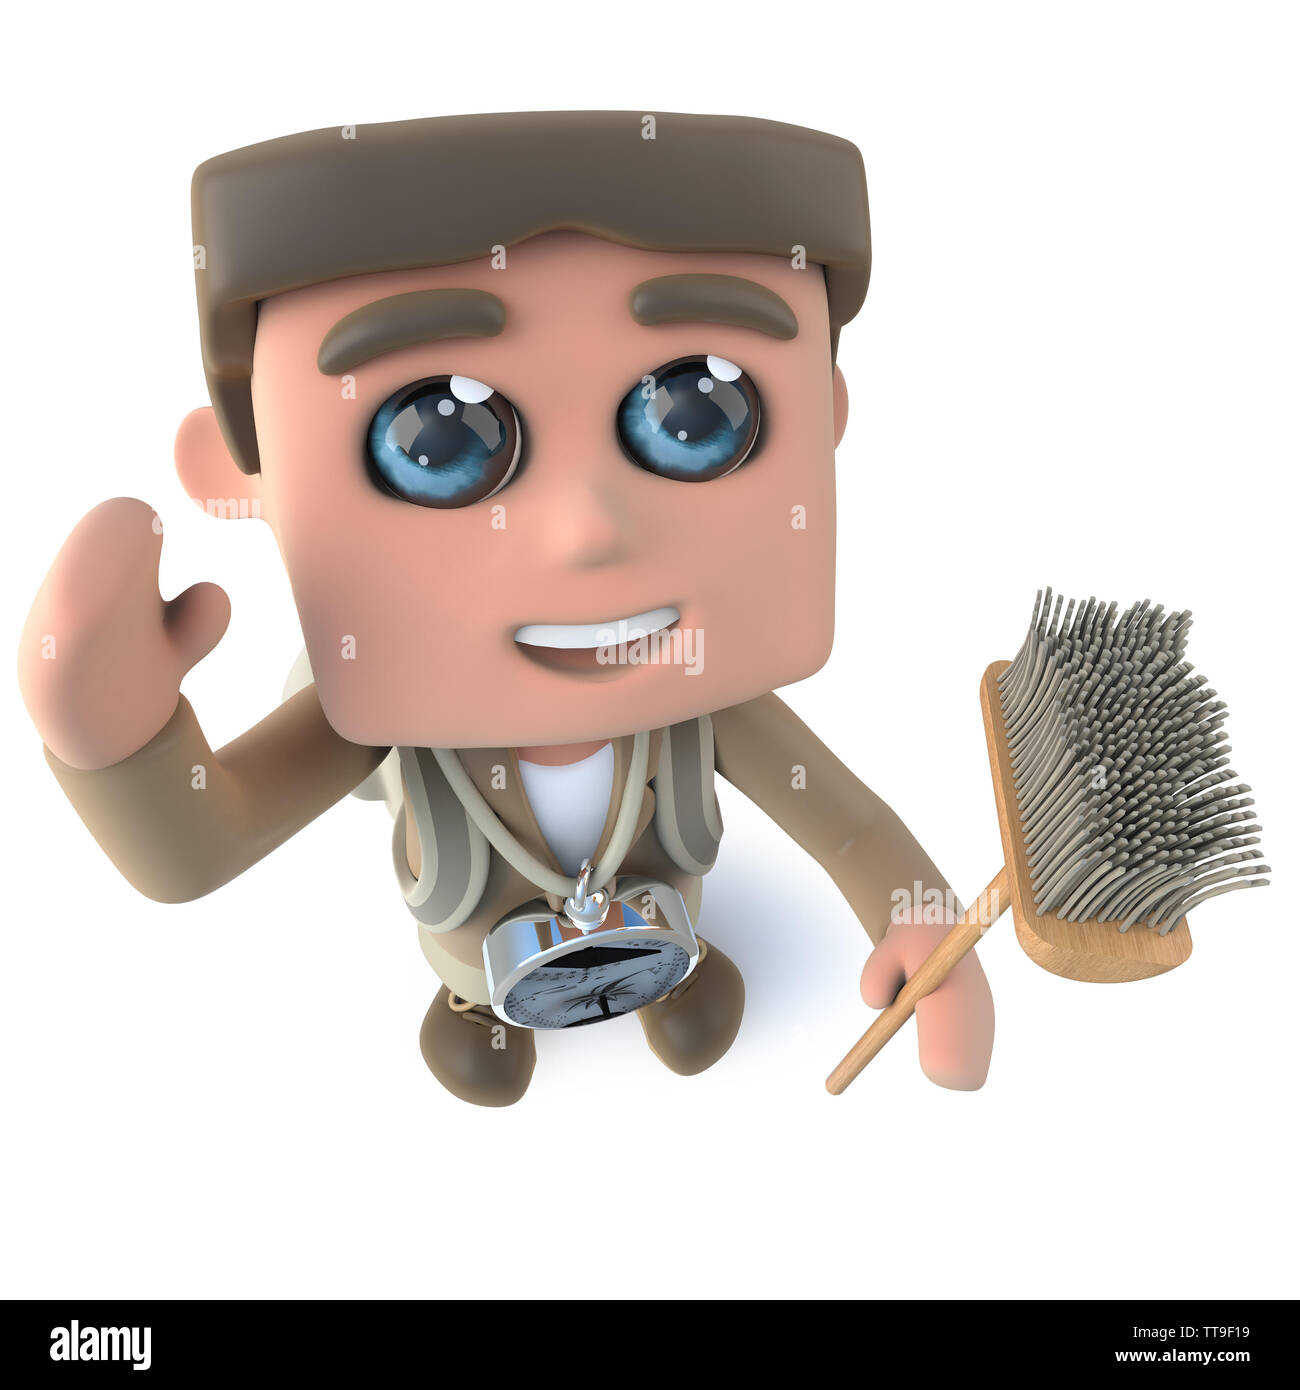 3d render of a funny cartoon explorer adventurer holding a broom and waving - Stock Image